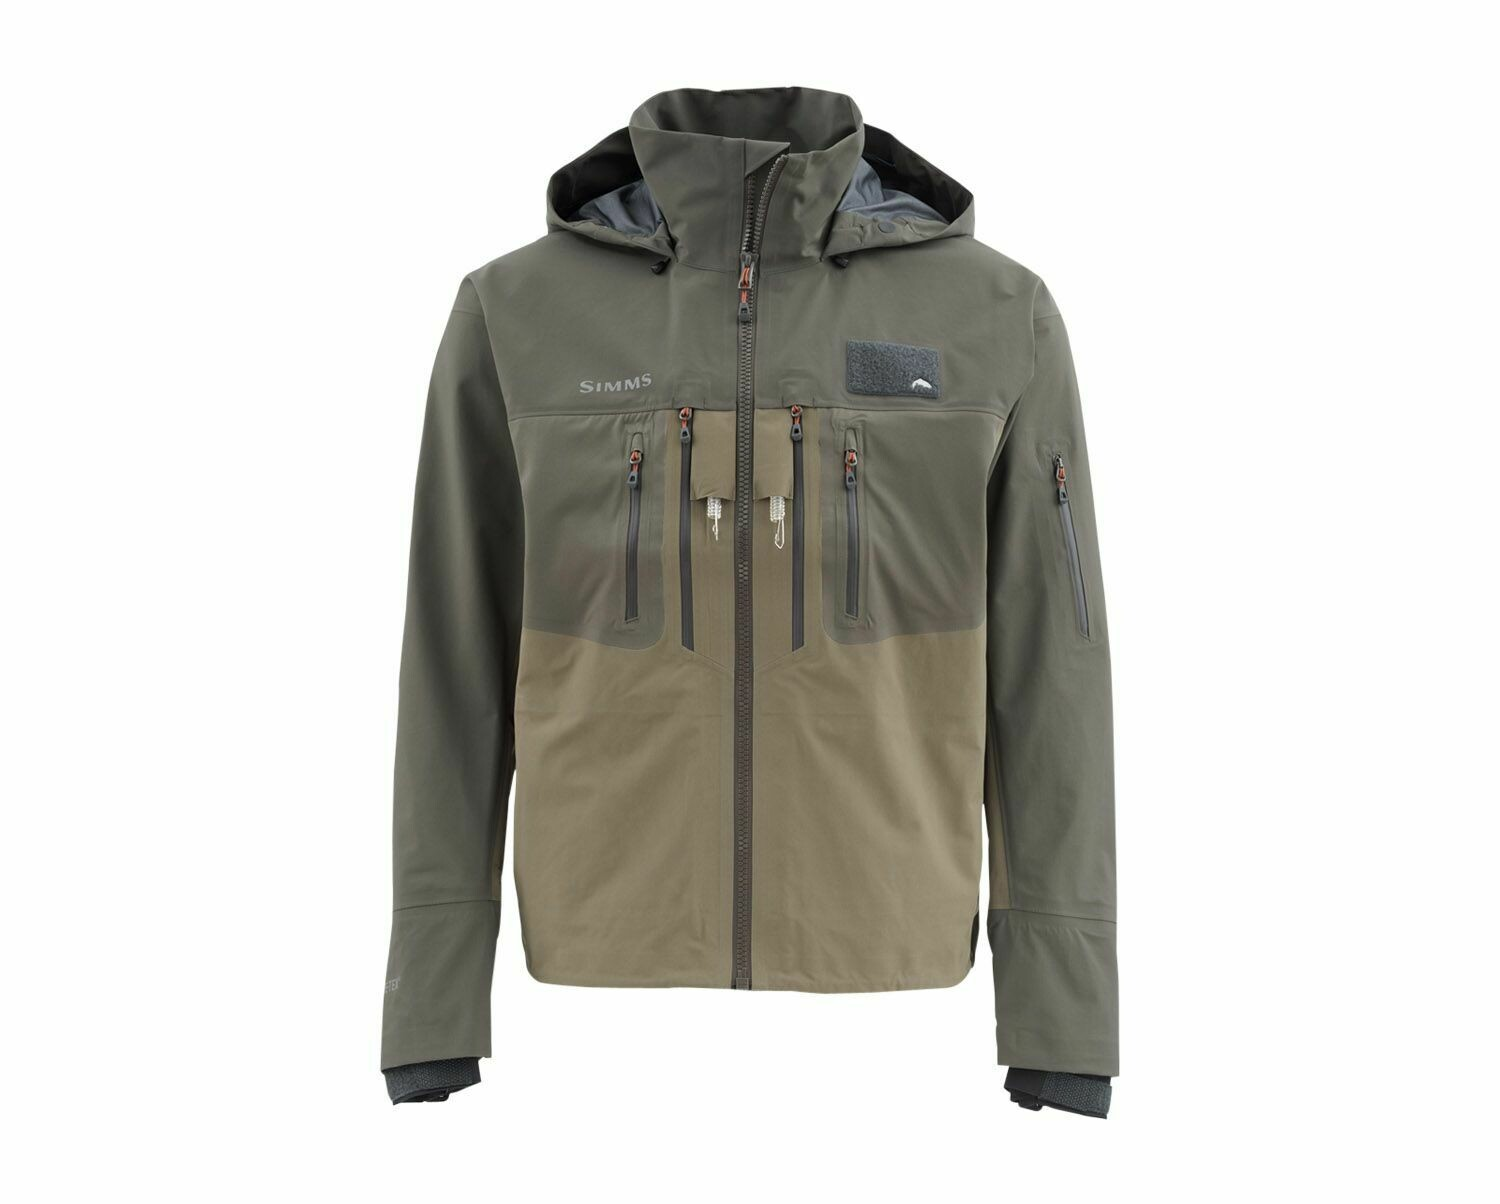 Simms G3 Tactical Wading Jacket